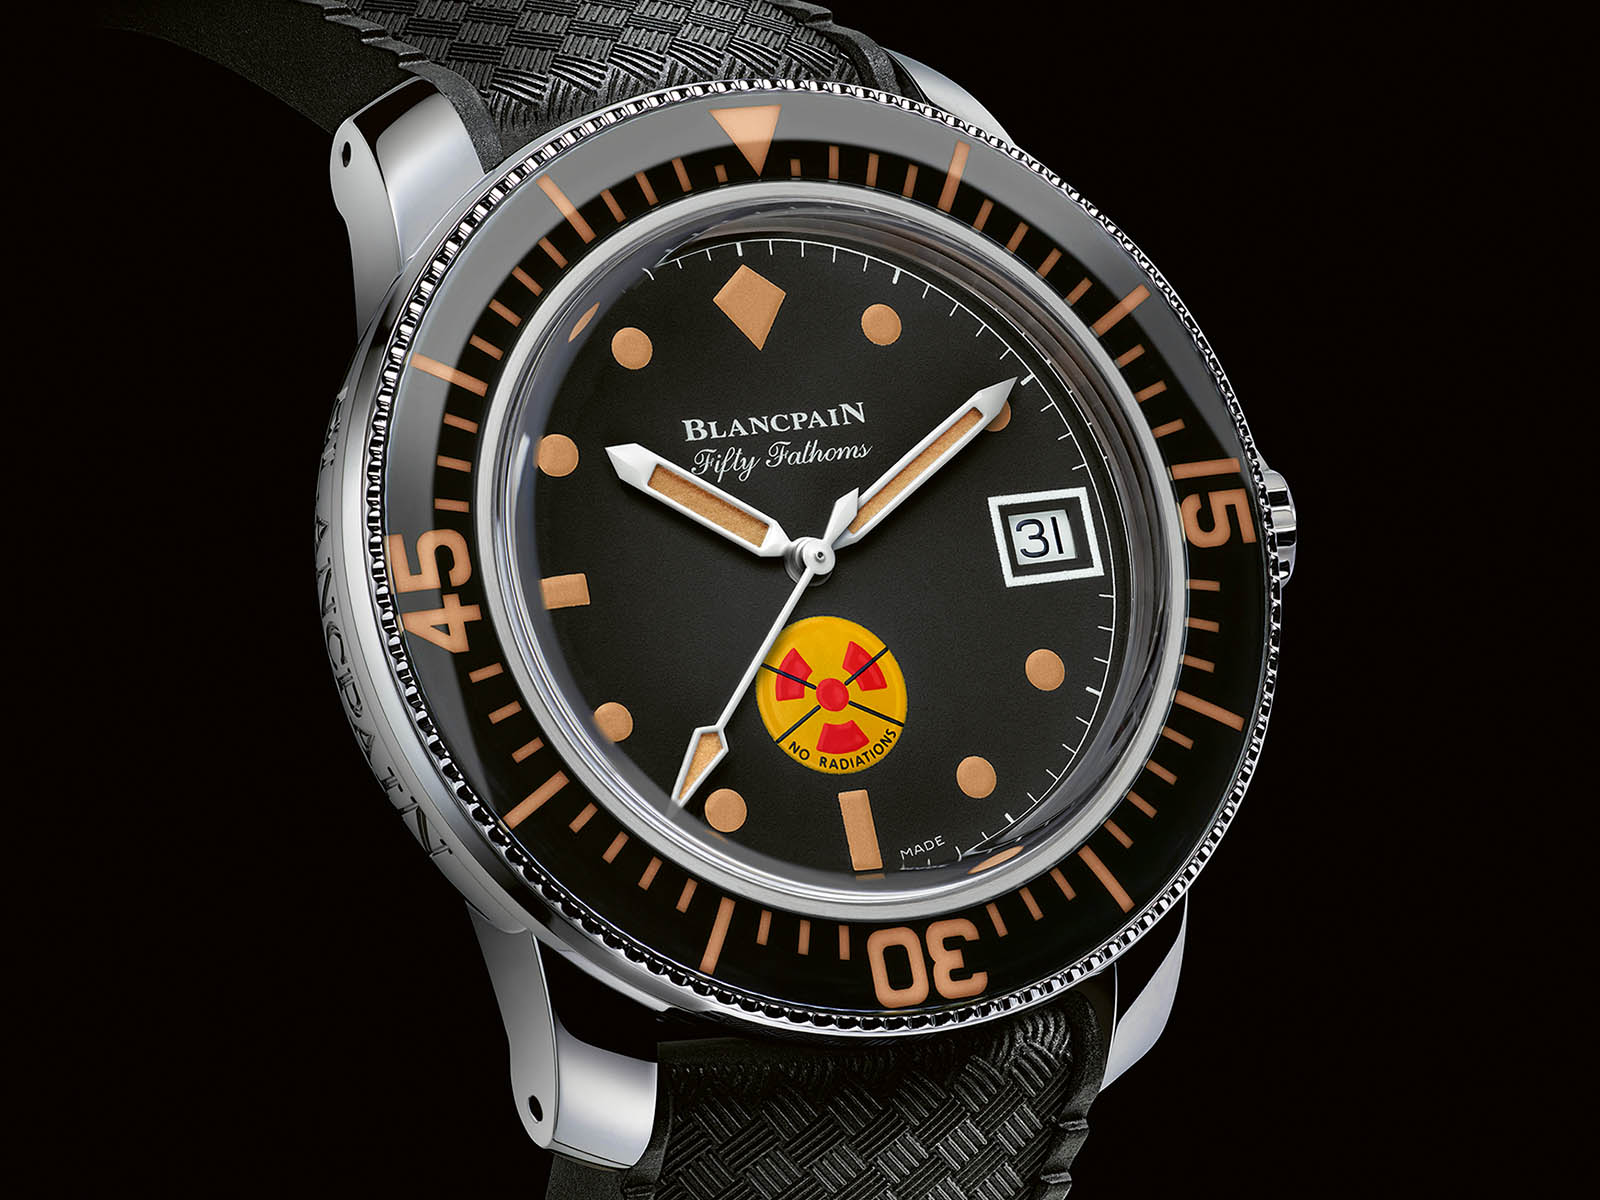 5008d-1130-b64a-blancpain-tribute-to-fifty-fathoms-no-rad-limited-edition-6.jpg